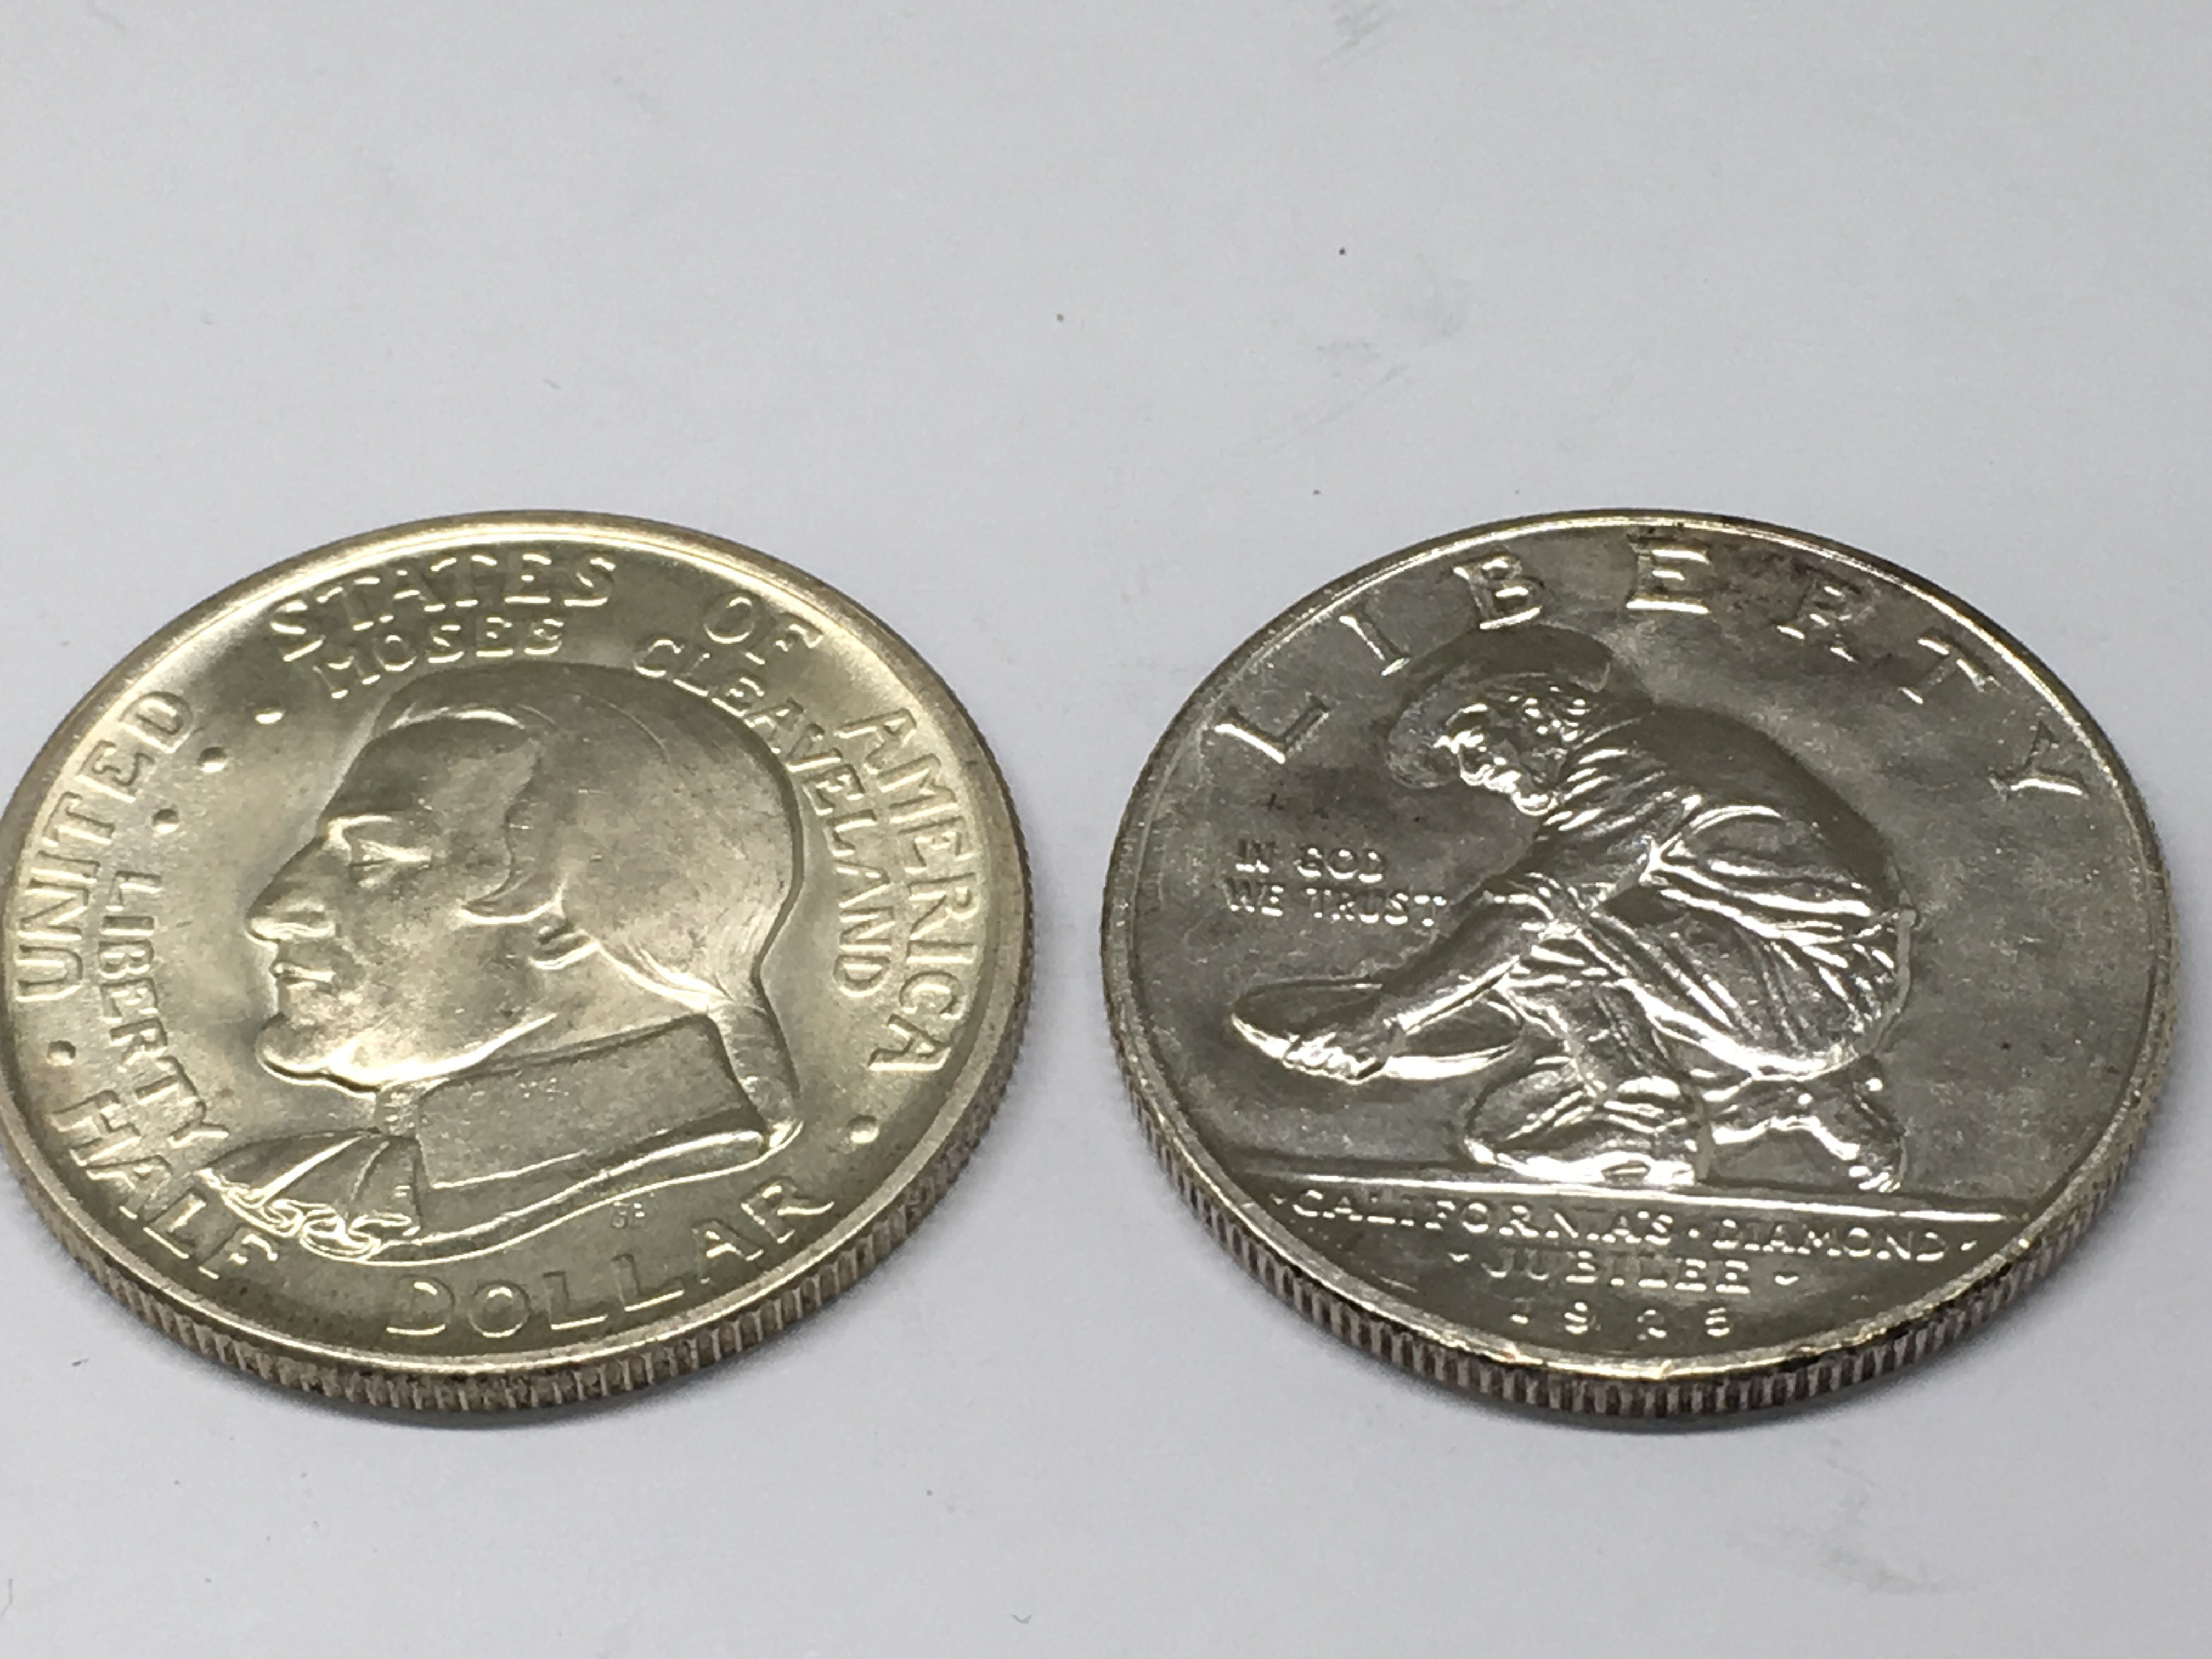 Lot 156 - Two American commemorative half dollar coins. The